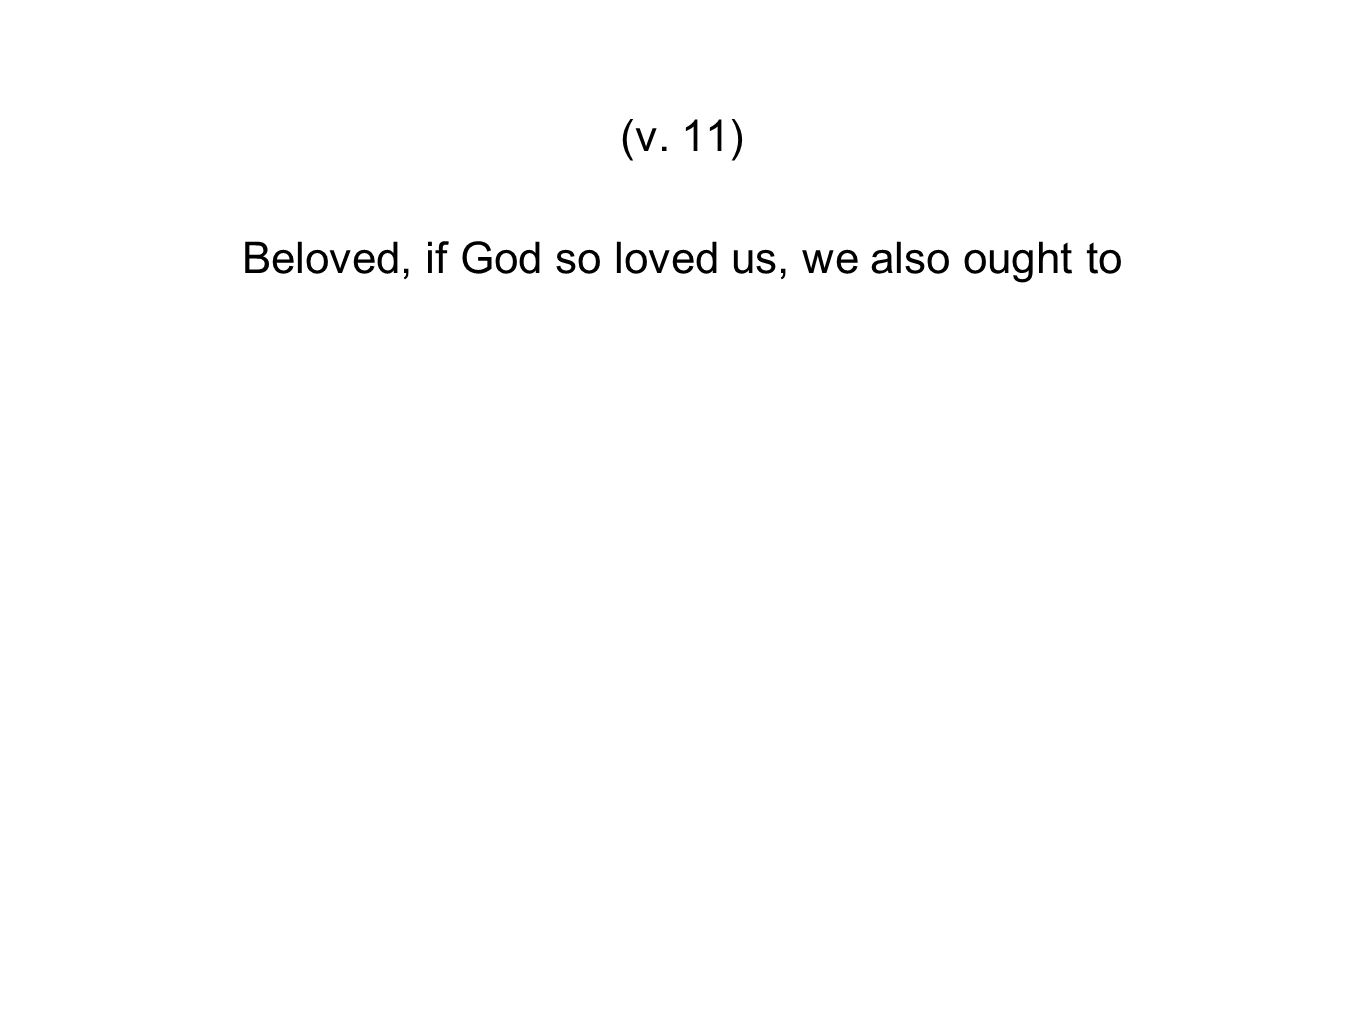 Beloved, if God so loved us, we also ought to